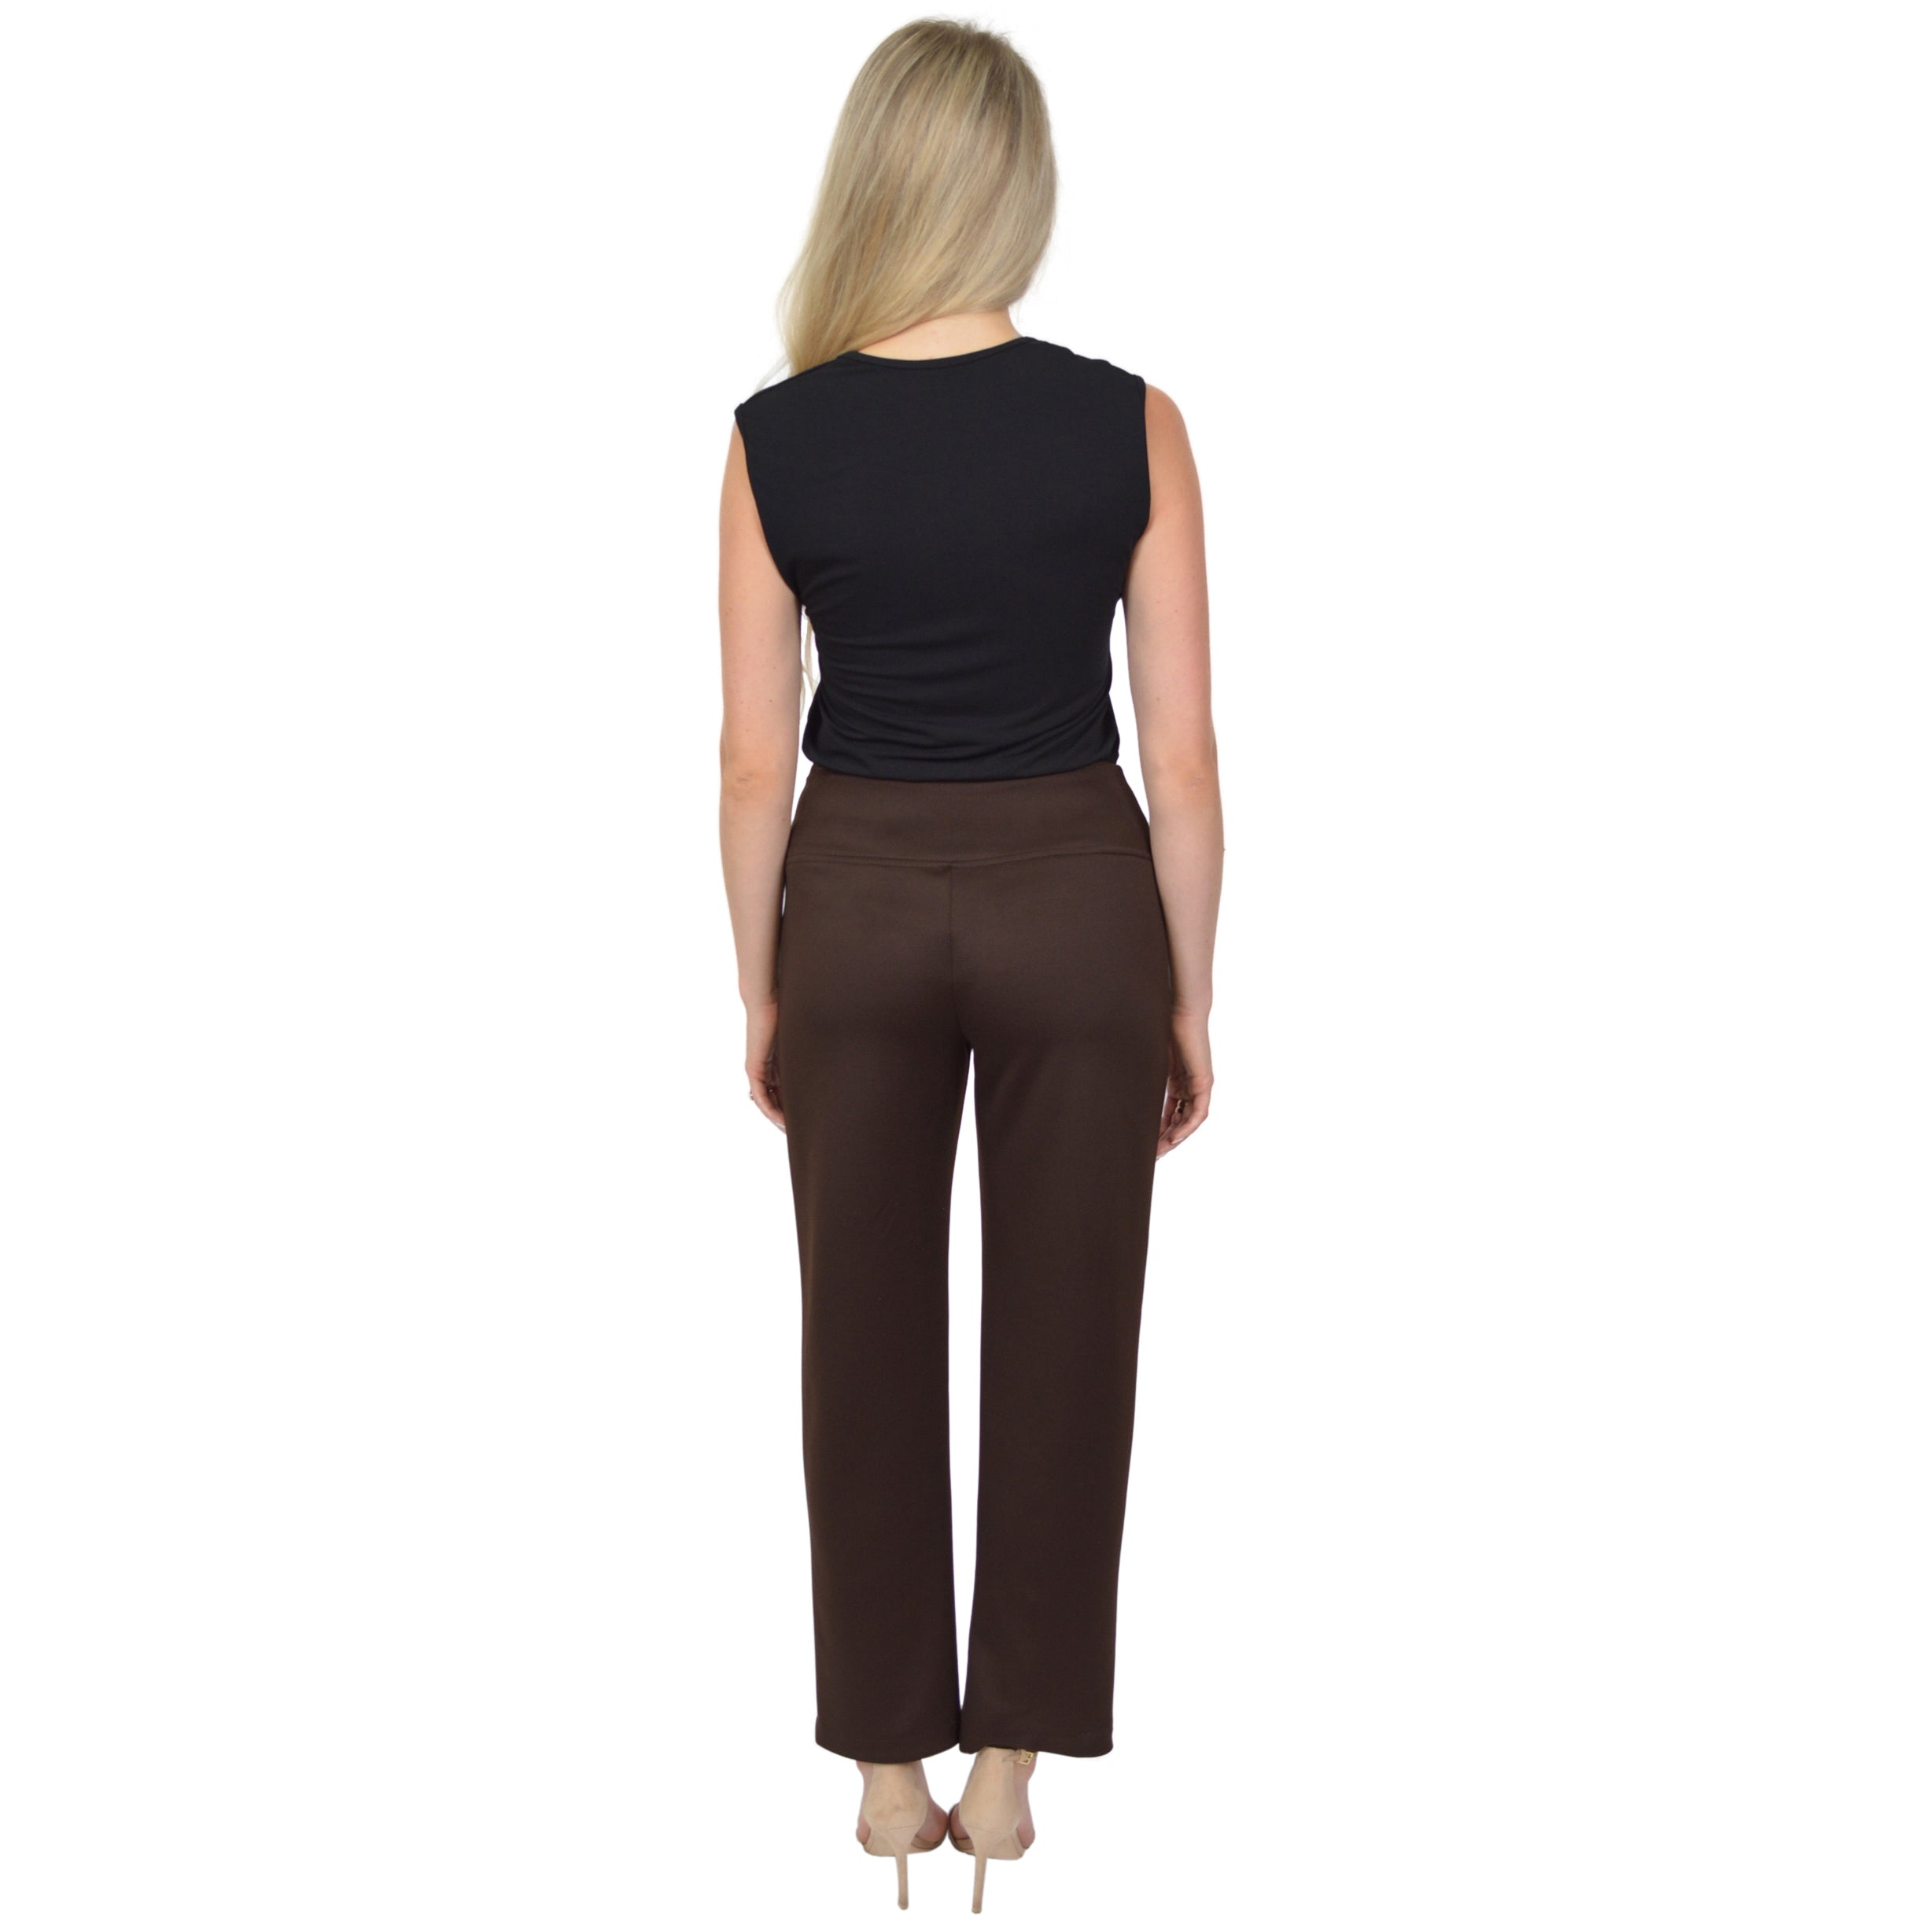 Women's Regular and Plus Size High Waisted Pull on Work Pants with Pockets